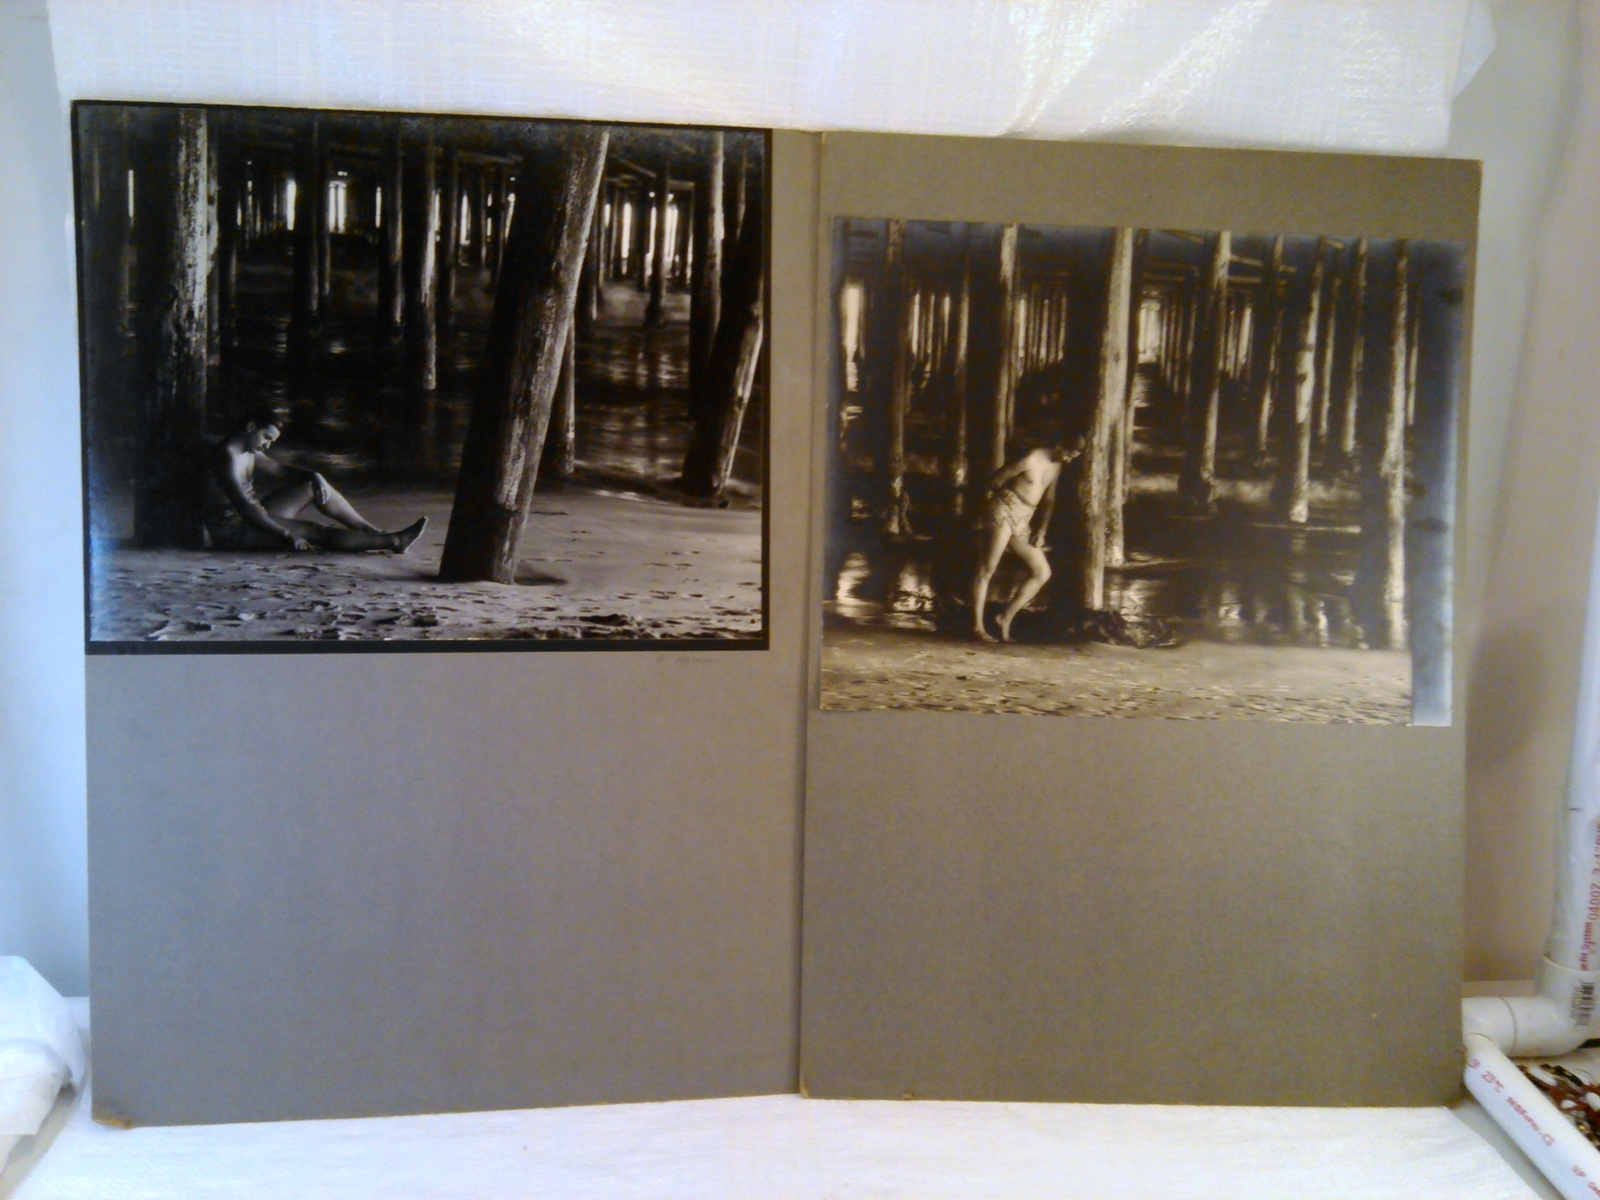 2 Vintage Photographs by Robert Hemmi Black & White circa 1960's